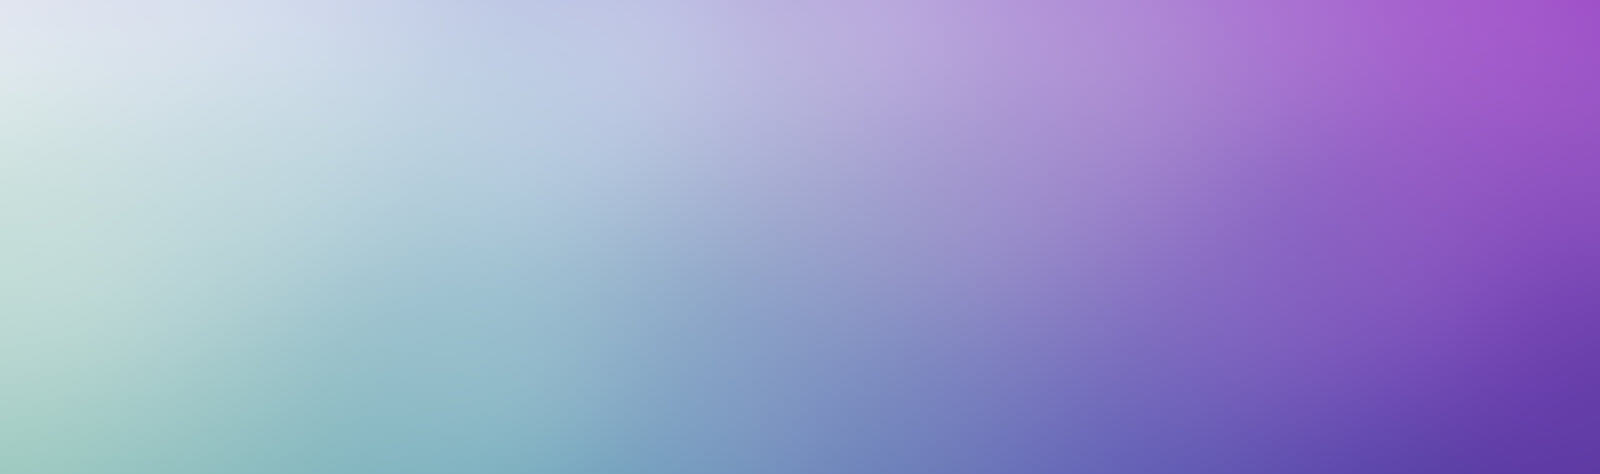 green purple 1600x474 - Supporting the Essential Week